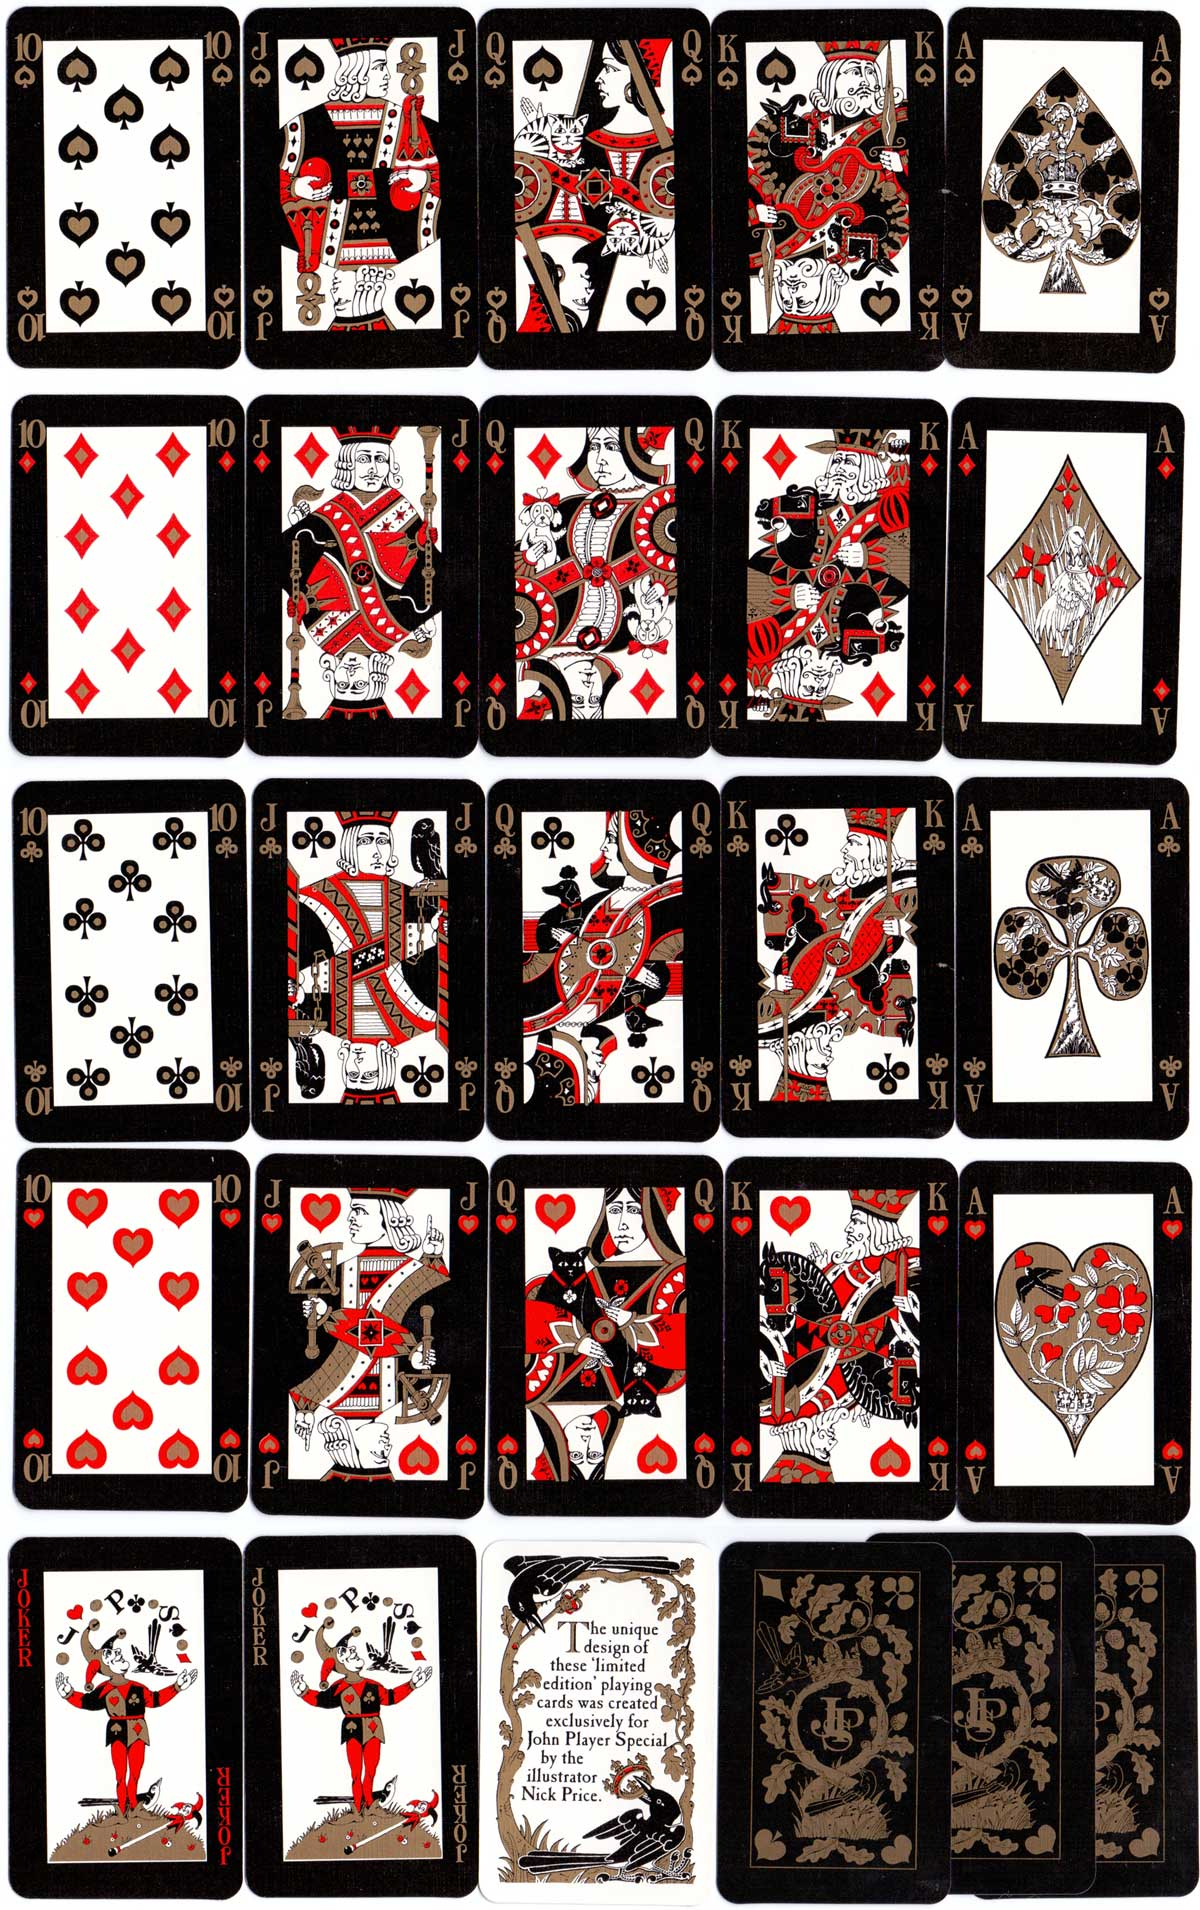 John Player Special non-standard playing cards created by the illustrator Nick Price, 1987